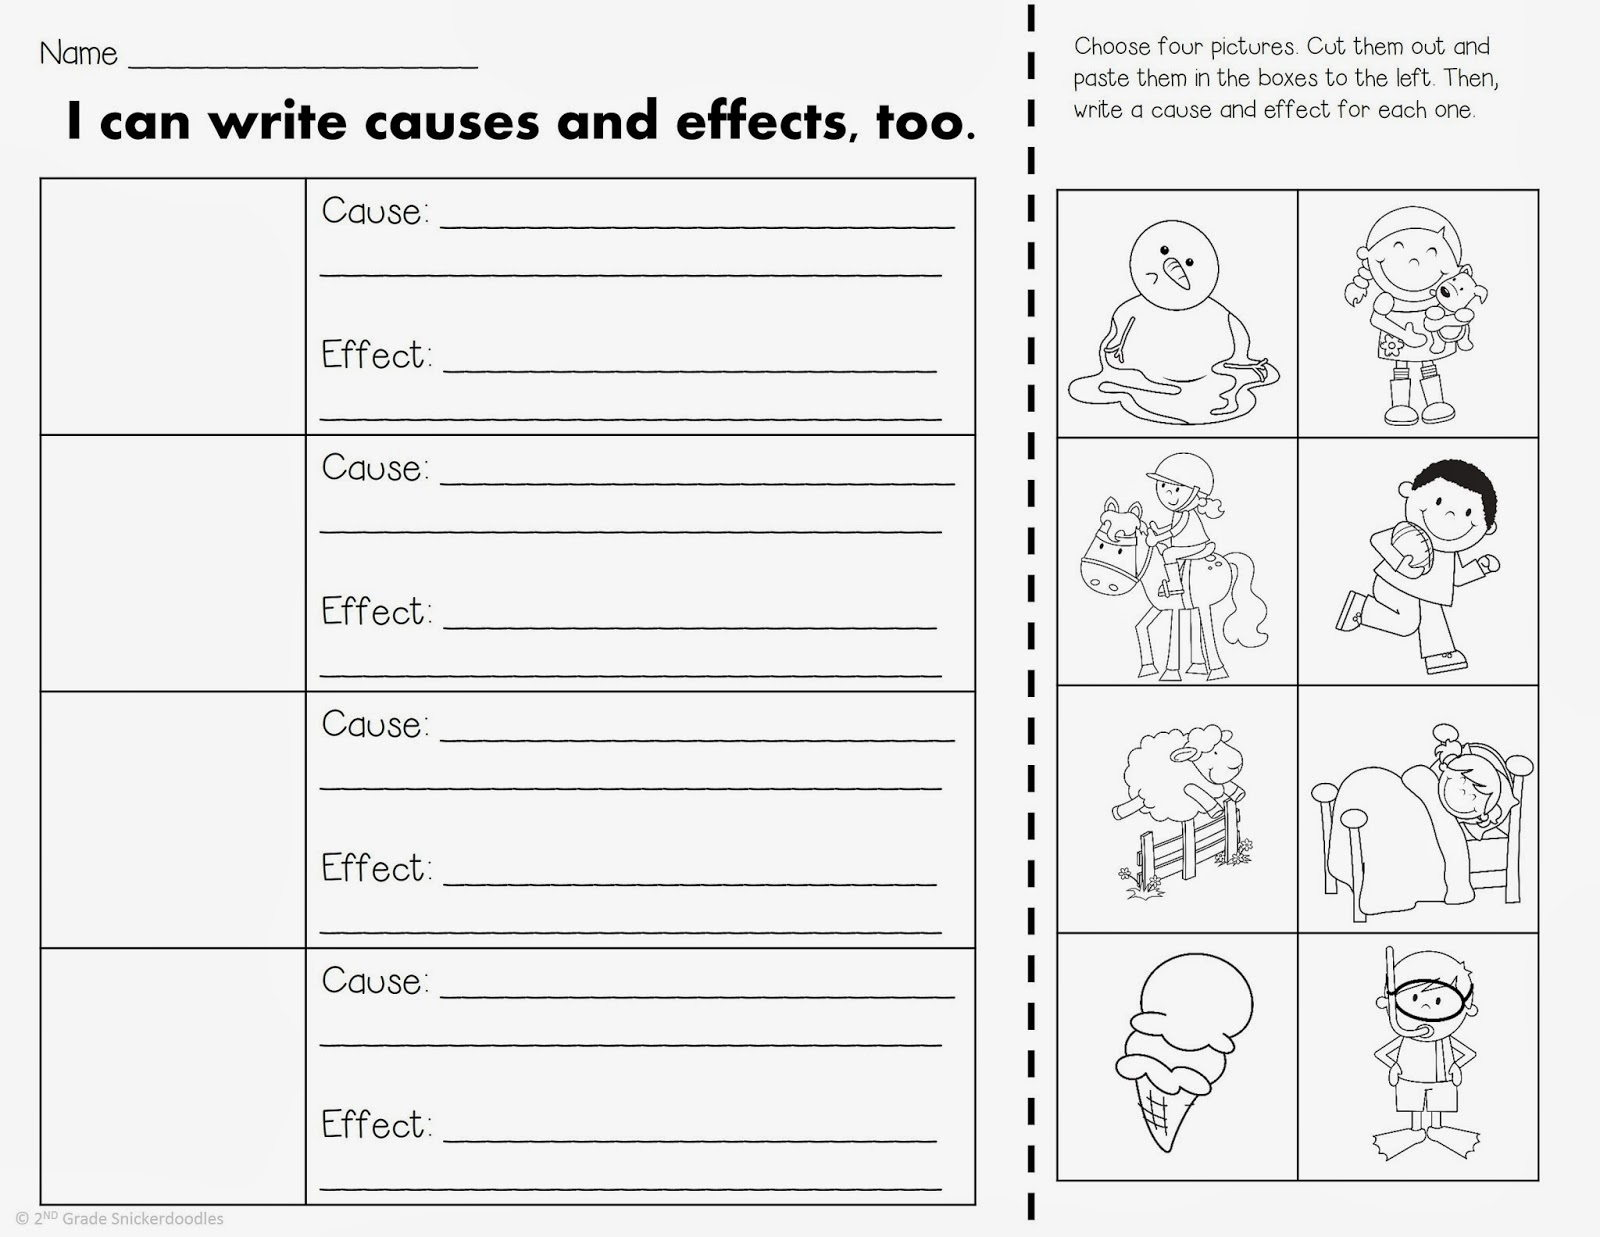 2nd Grade Snickerdoodles Cause and Effect anchor chart mentor – Cause and Effect Worksheets 1st Grade